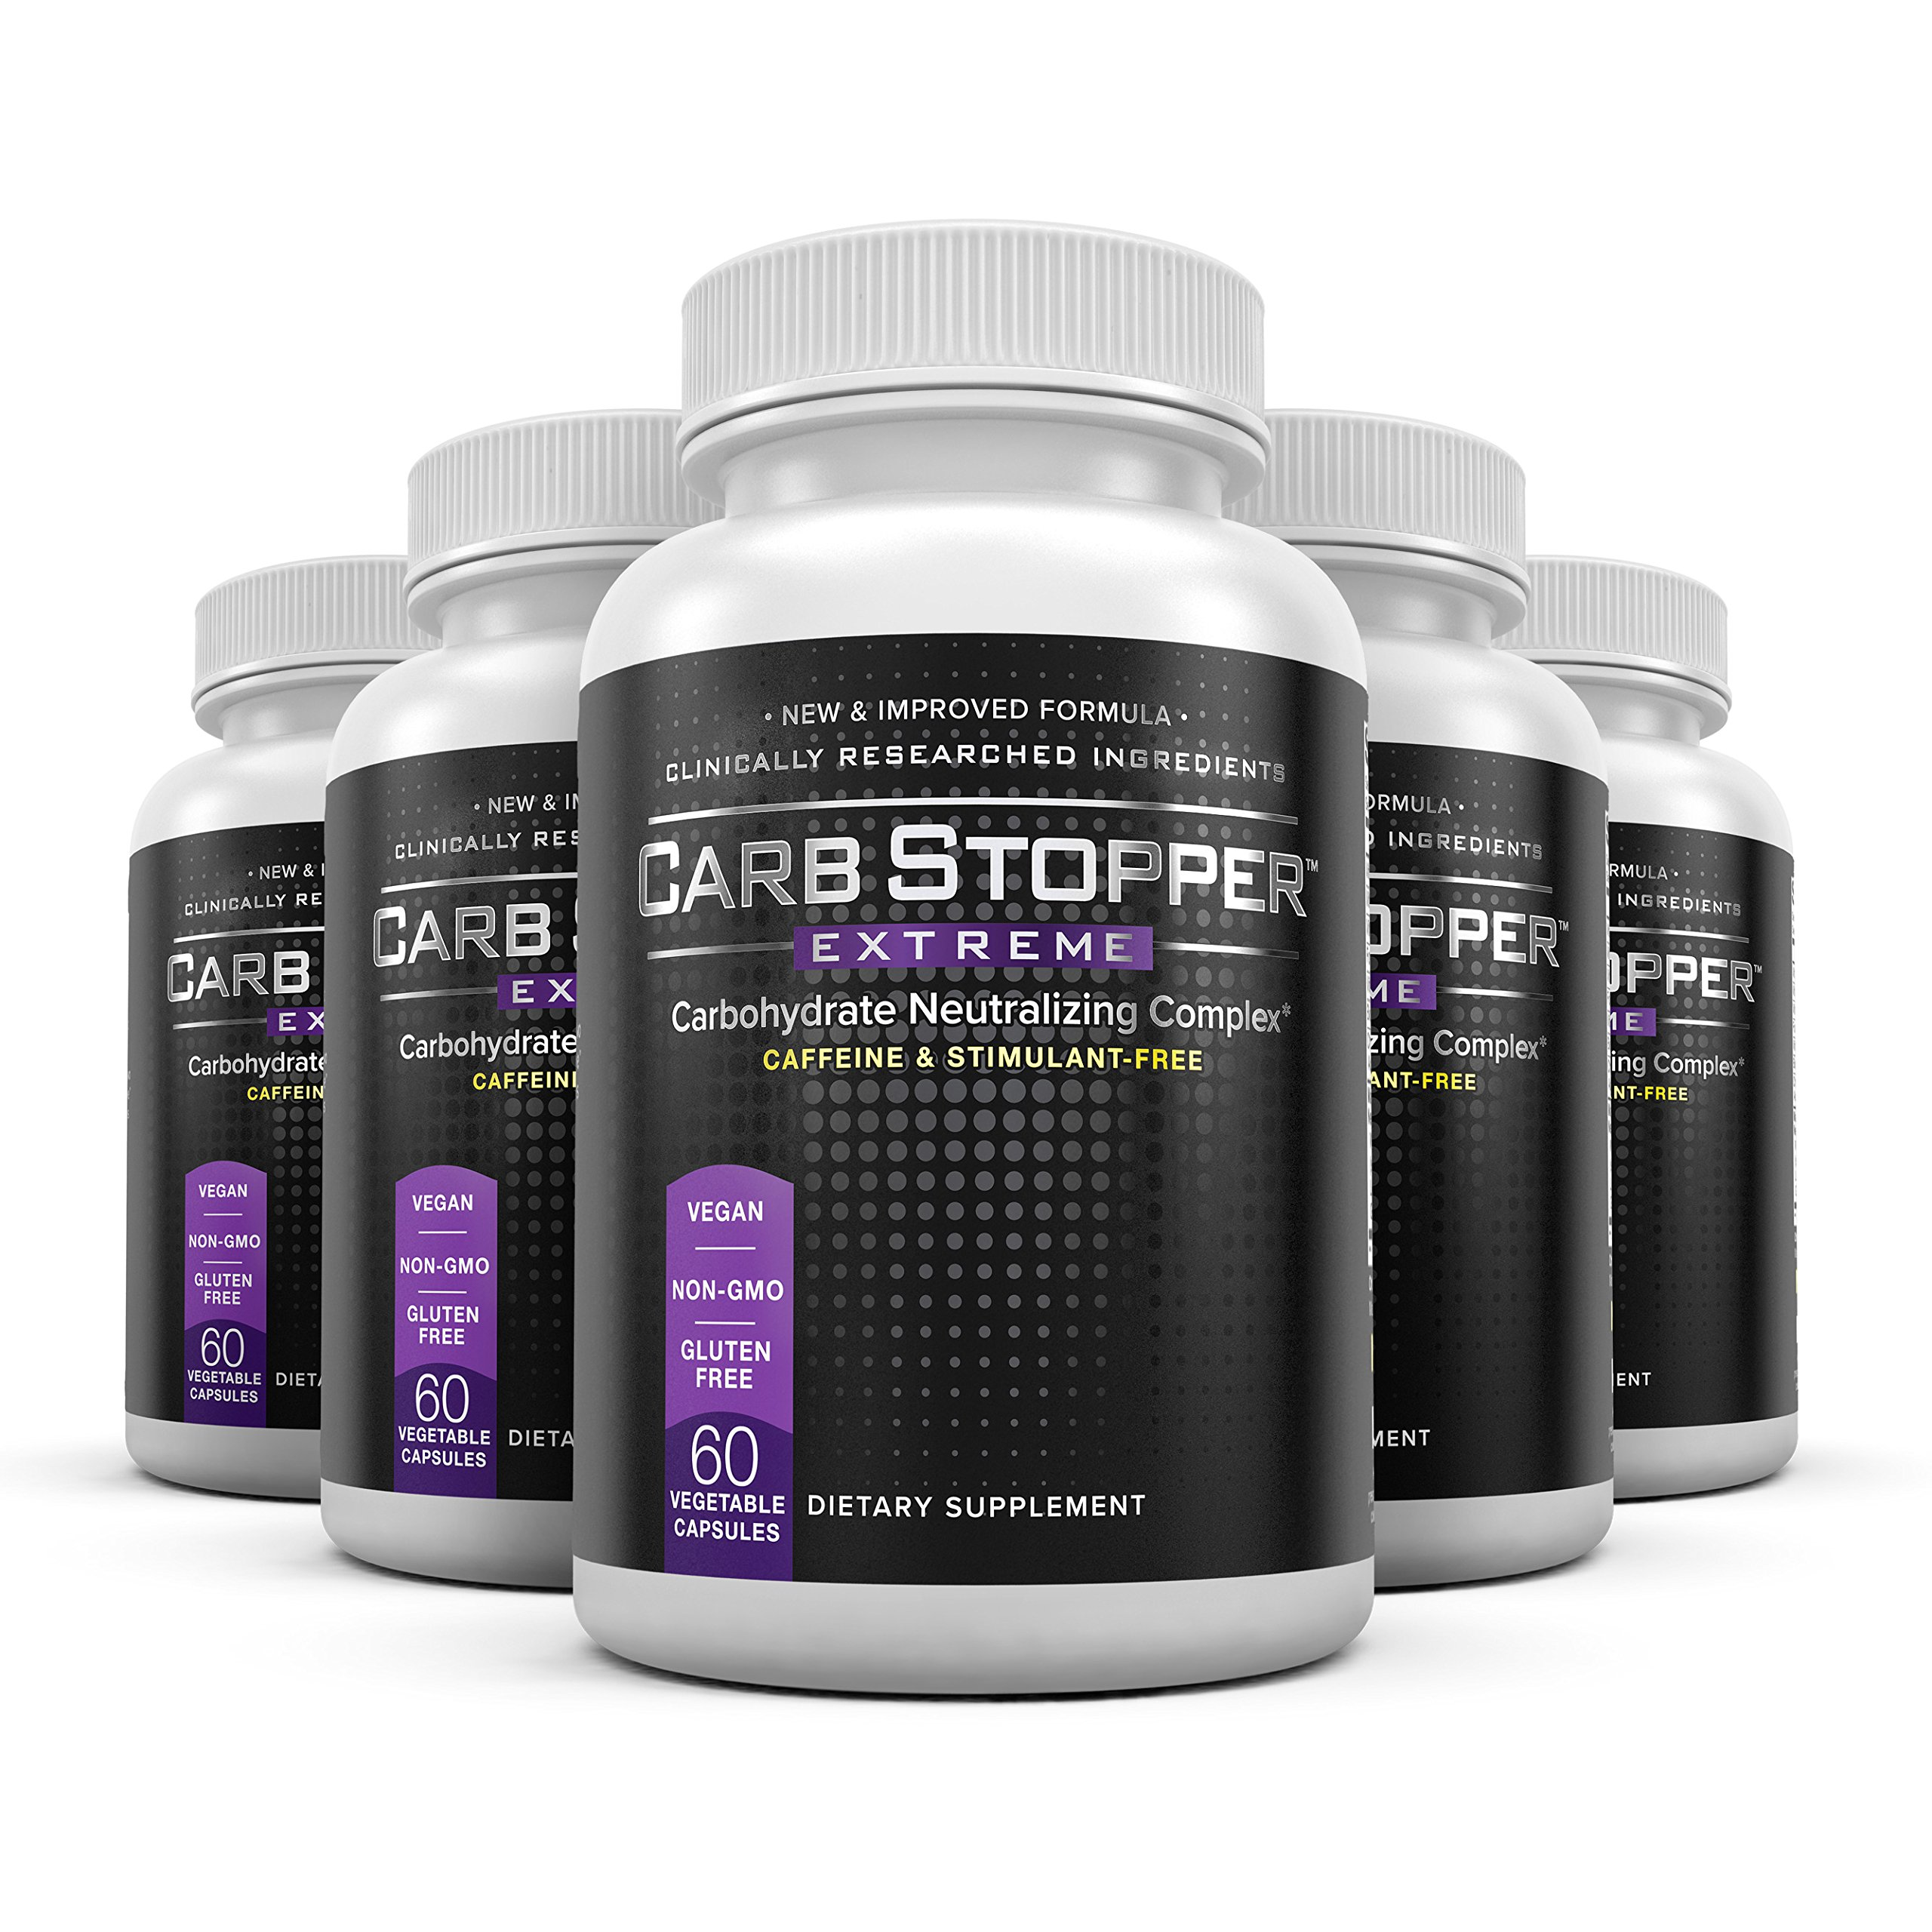 Carb Stopper Extreme (5 Bottles) - Maximum Strength, All-Natural Carbohydrate and Starch Blocker Weight Loss Supplement | Absorb Fat with White Kidney Bean Extract Diet Pills, 60 Capsules Per Bottle